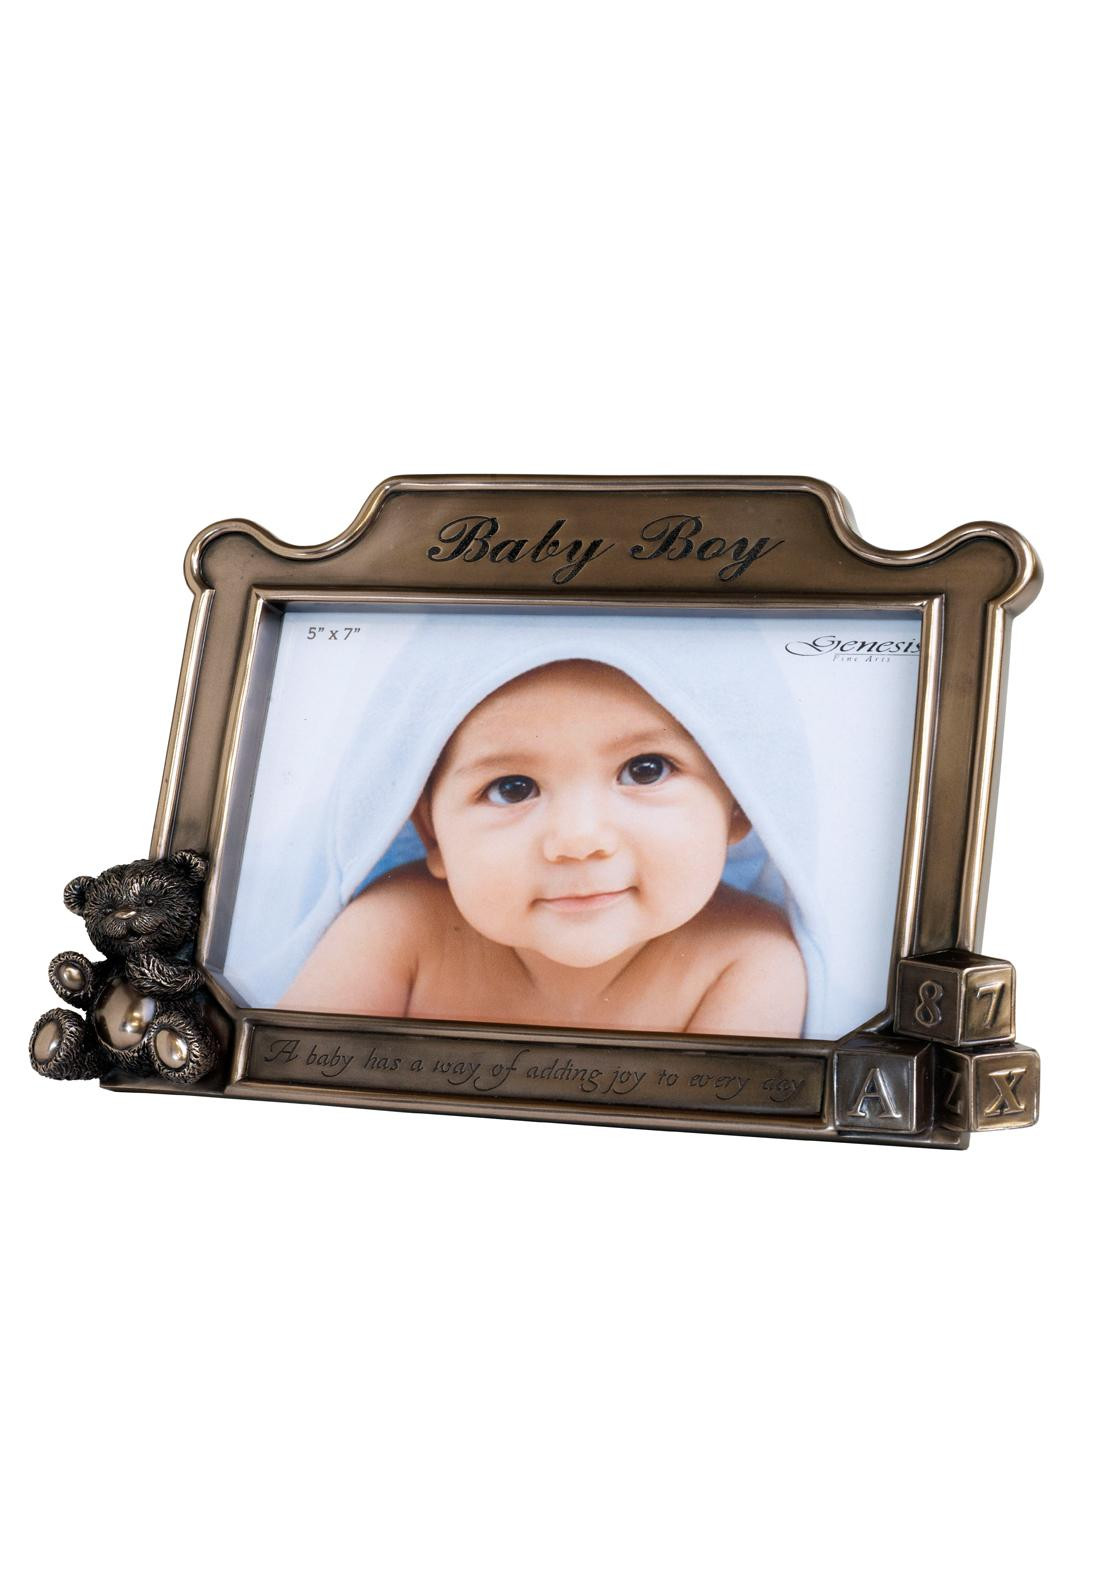 Genesis Baby Boy Bronze Photo Frame, 5 x 7 inches